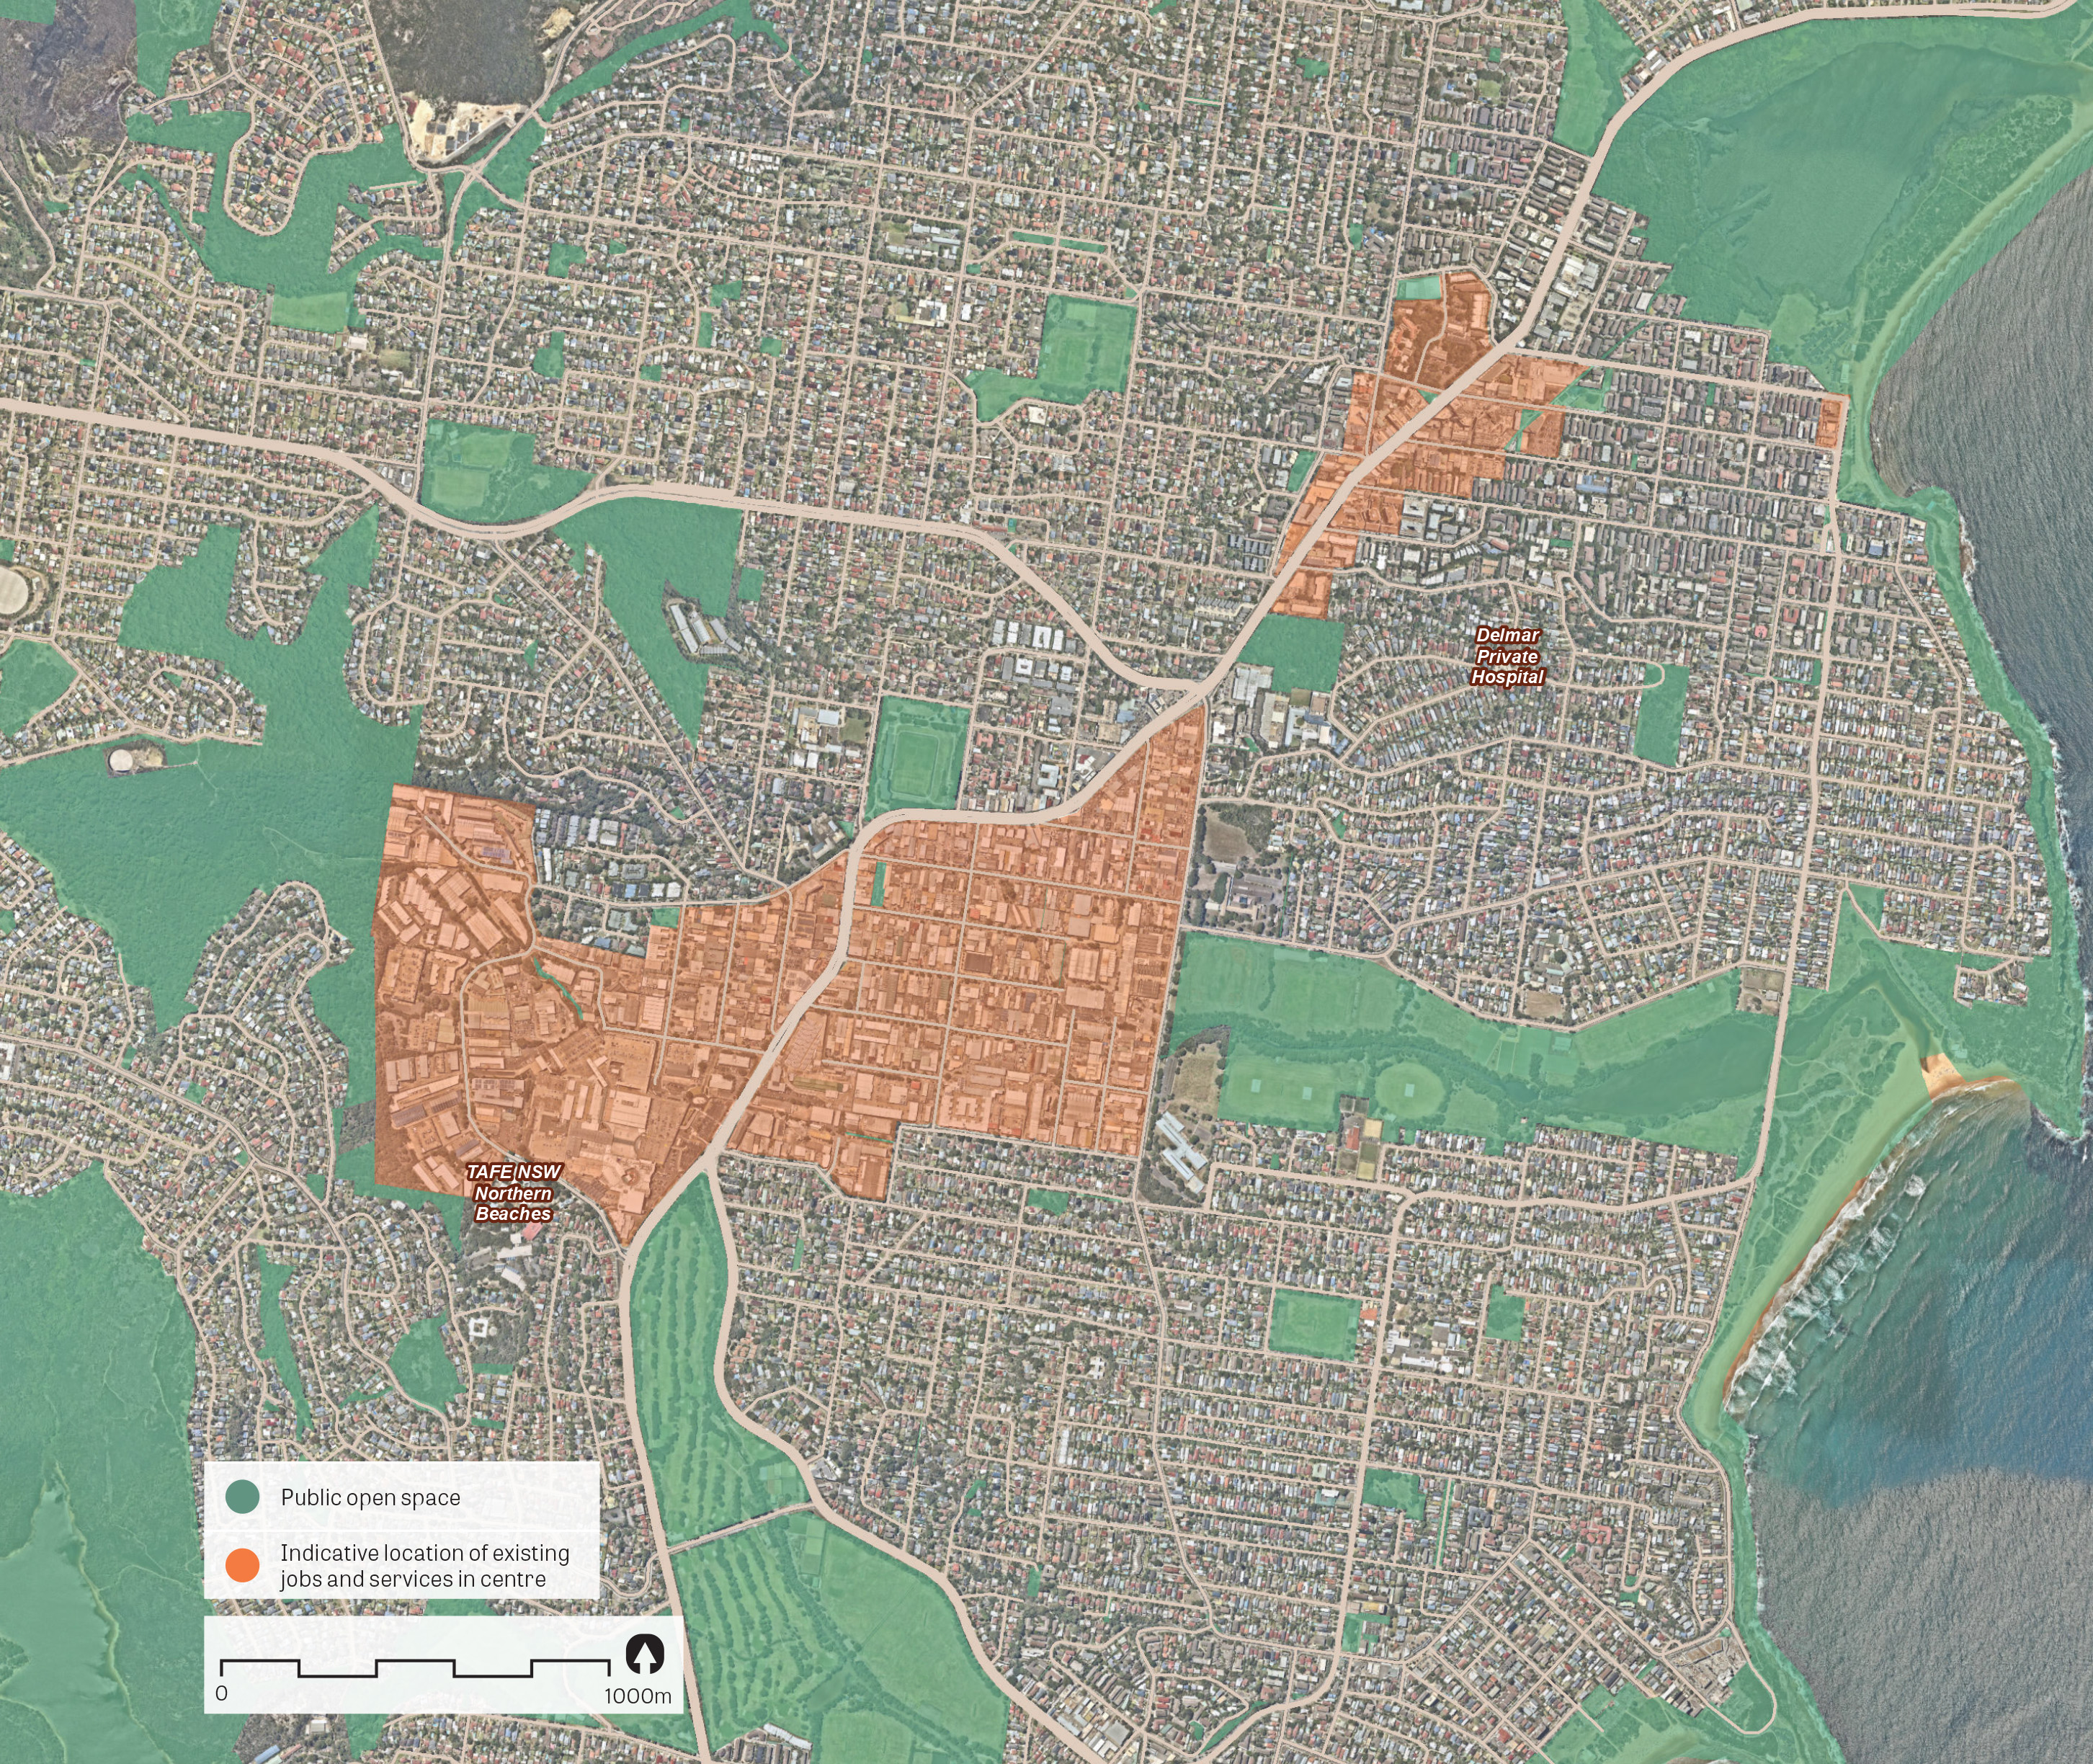 An aerial image of Brookvale-Dee Why showing the principal areas containing jobs and services.